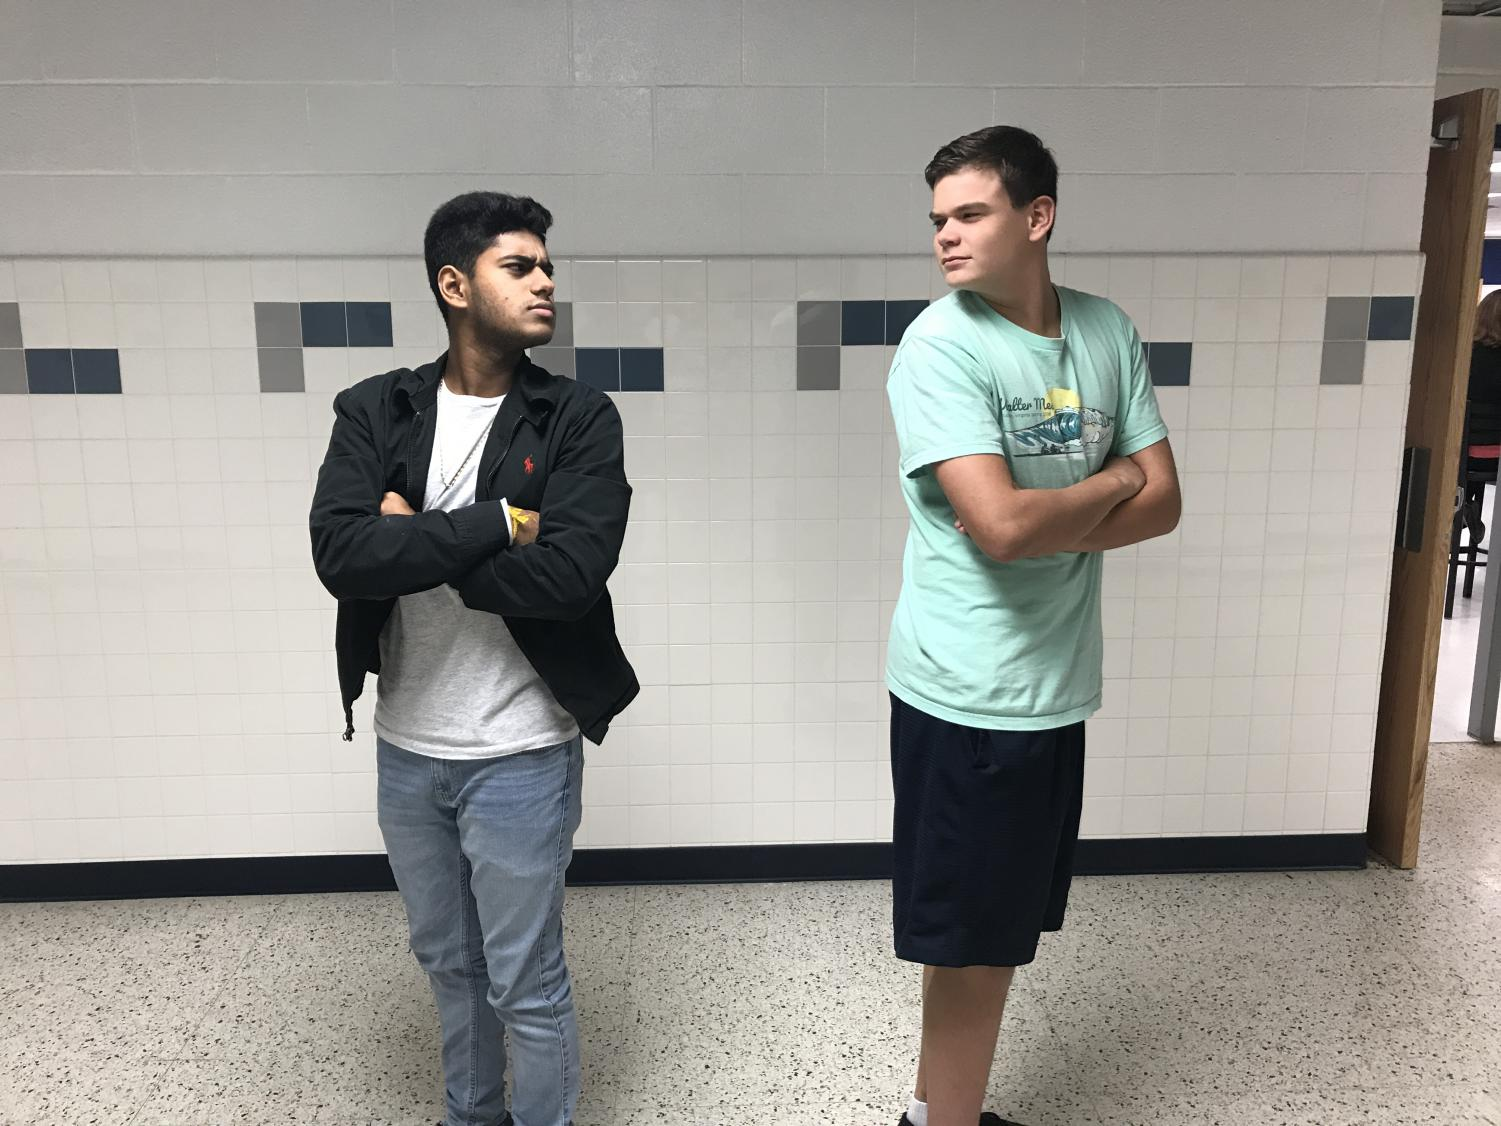 Juniors Ryan Metz and Tanvir Singh use their Hollywood-level acting to demonstrate the body language of uncuffers who do not want to be in a relationship.